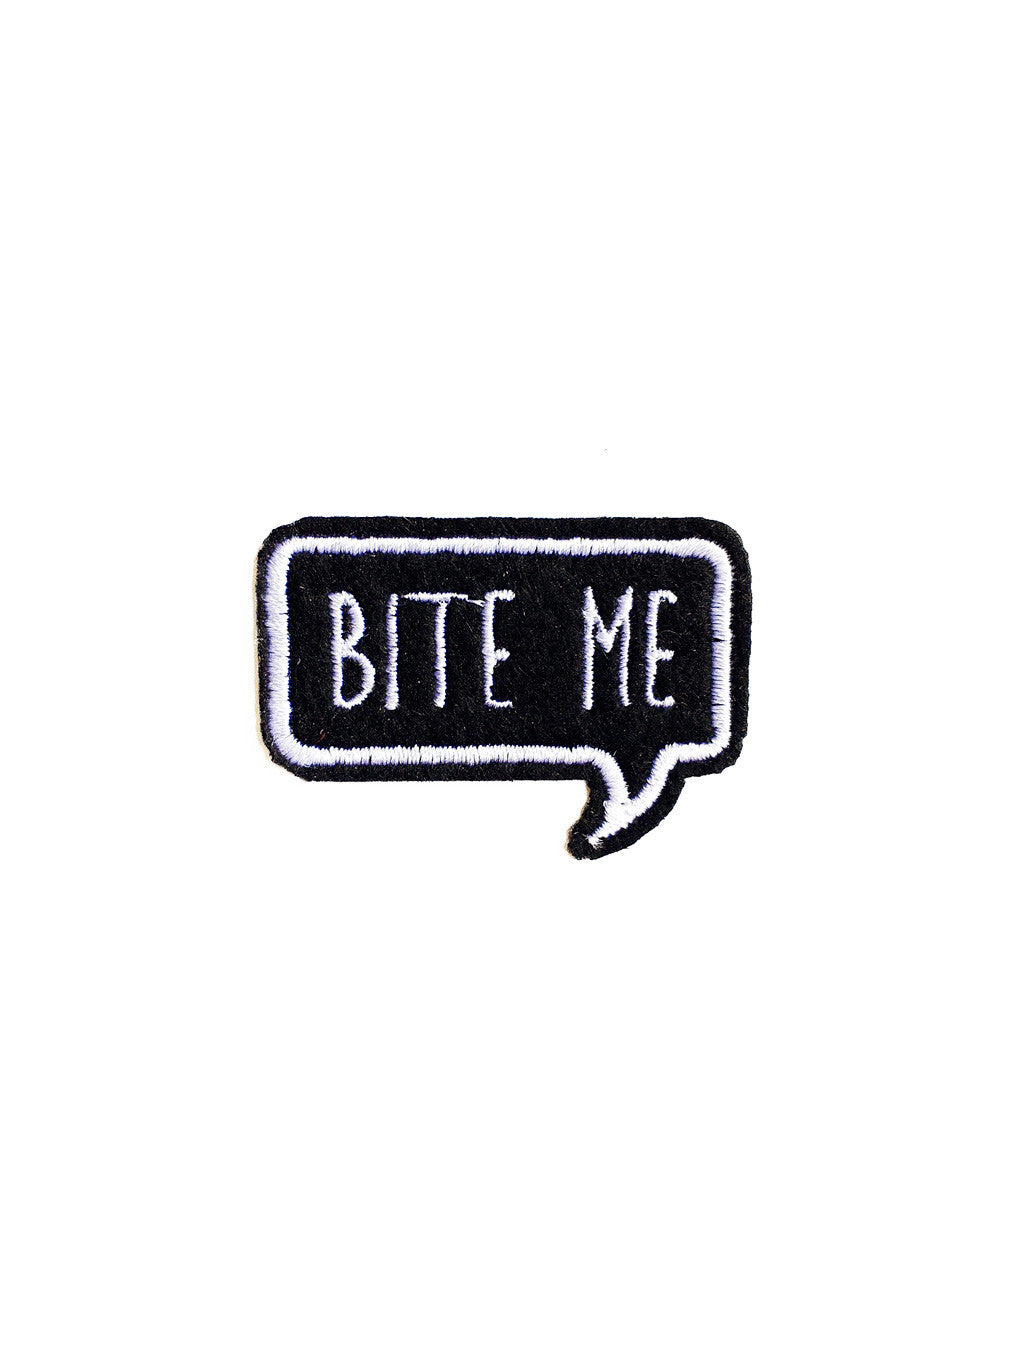 Bite Me Iron On Patch